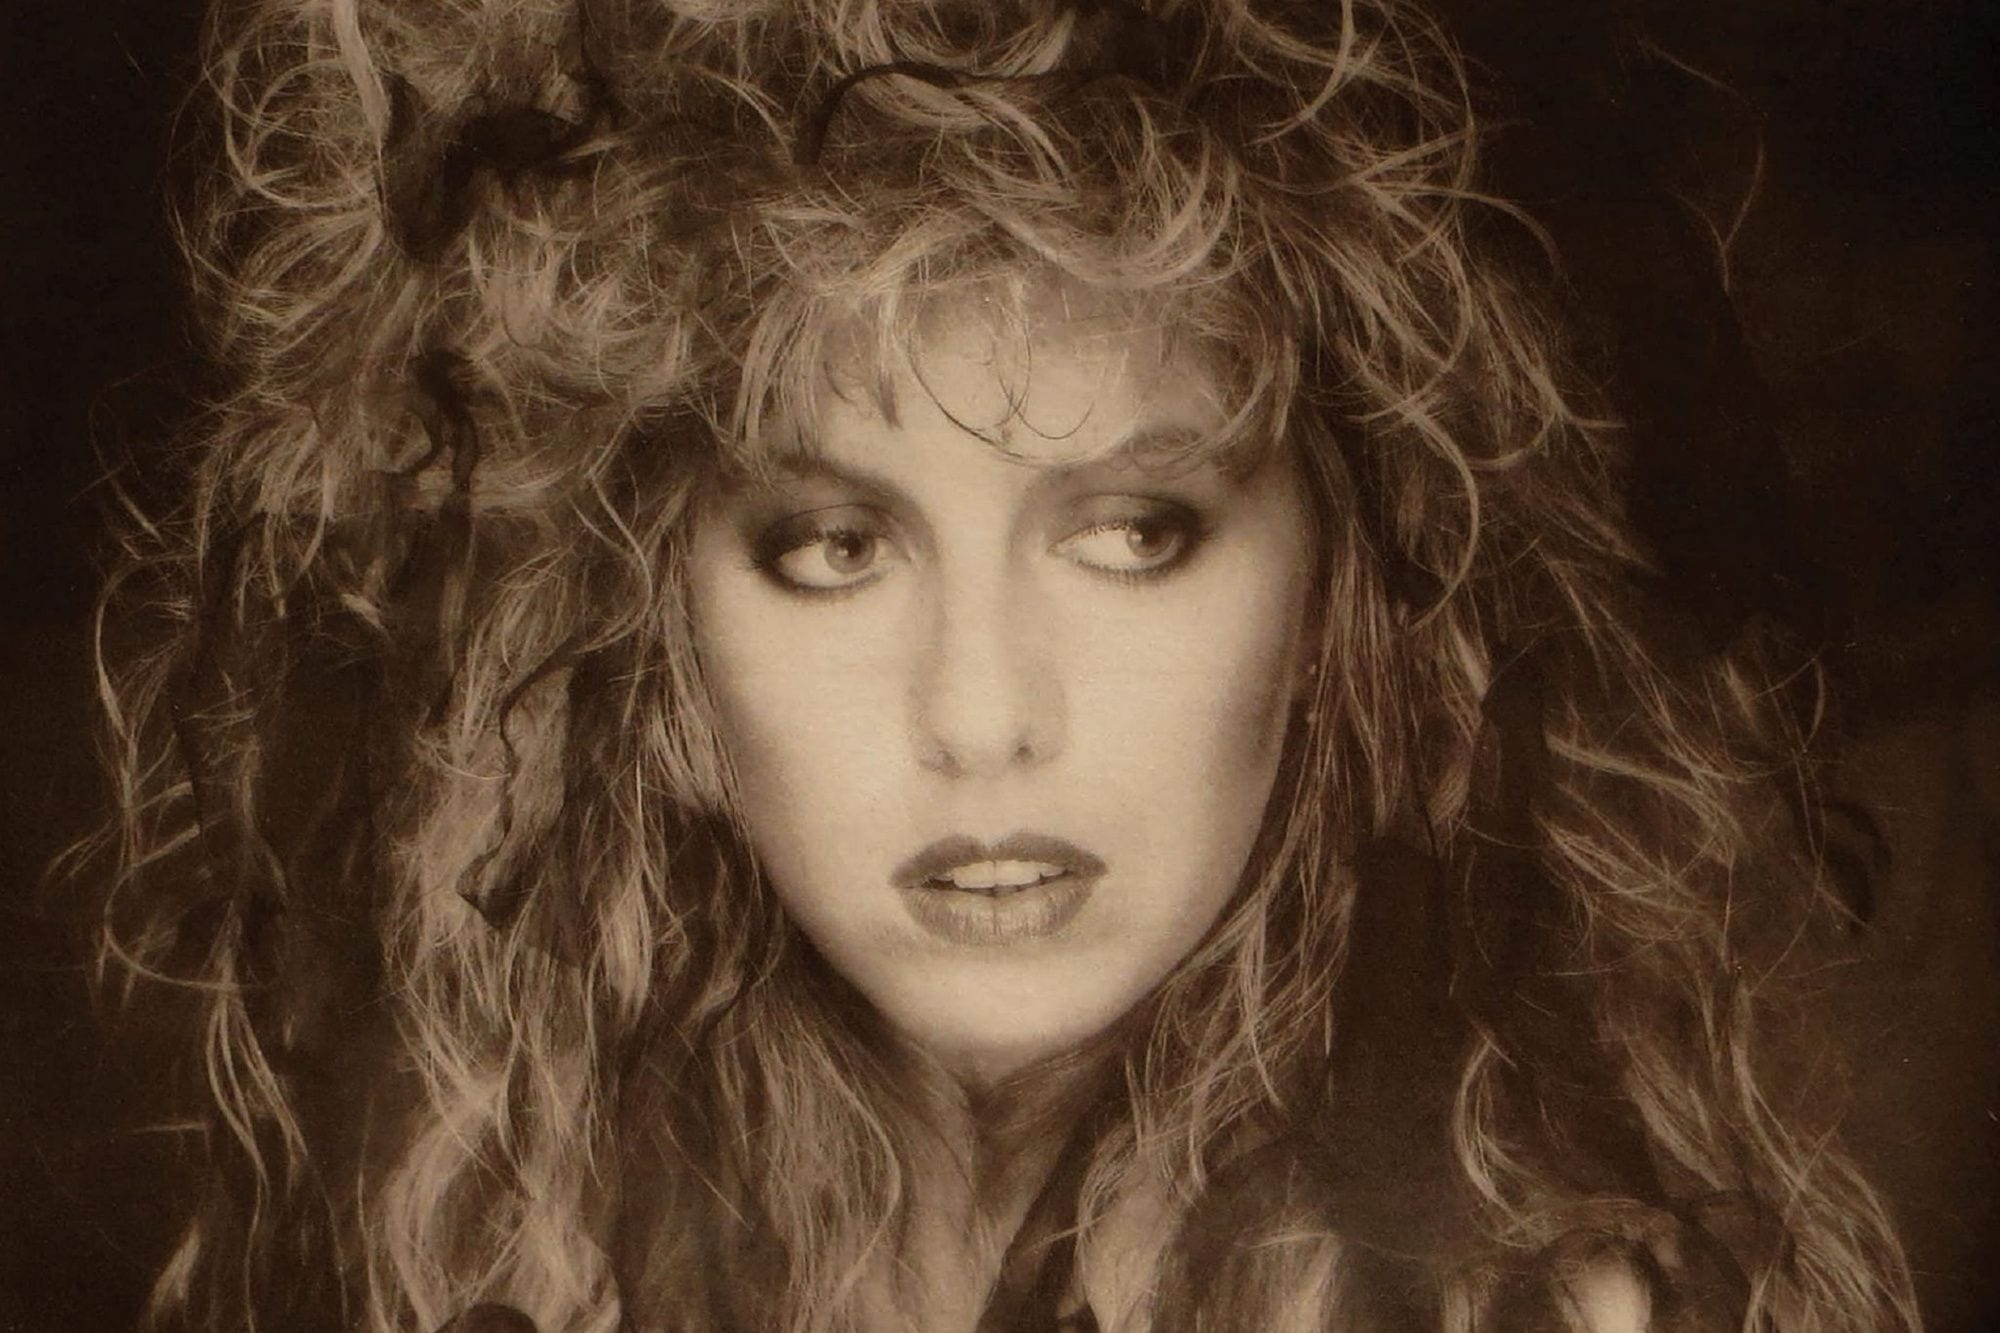 Judie Tzuke's 'The Chrysalis Recordings' Highlights Her Early '80s Transition to Synthpop